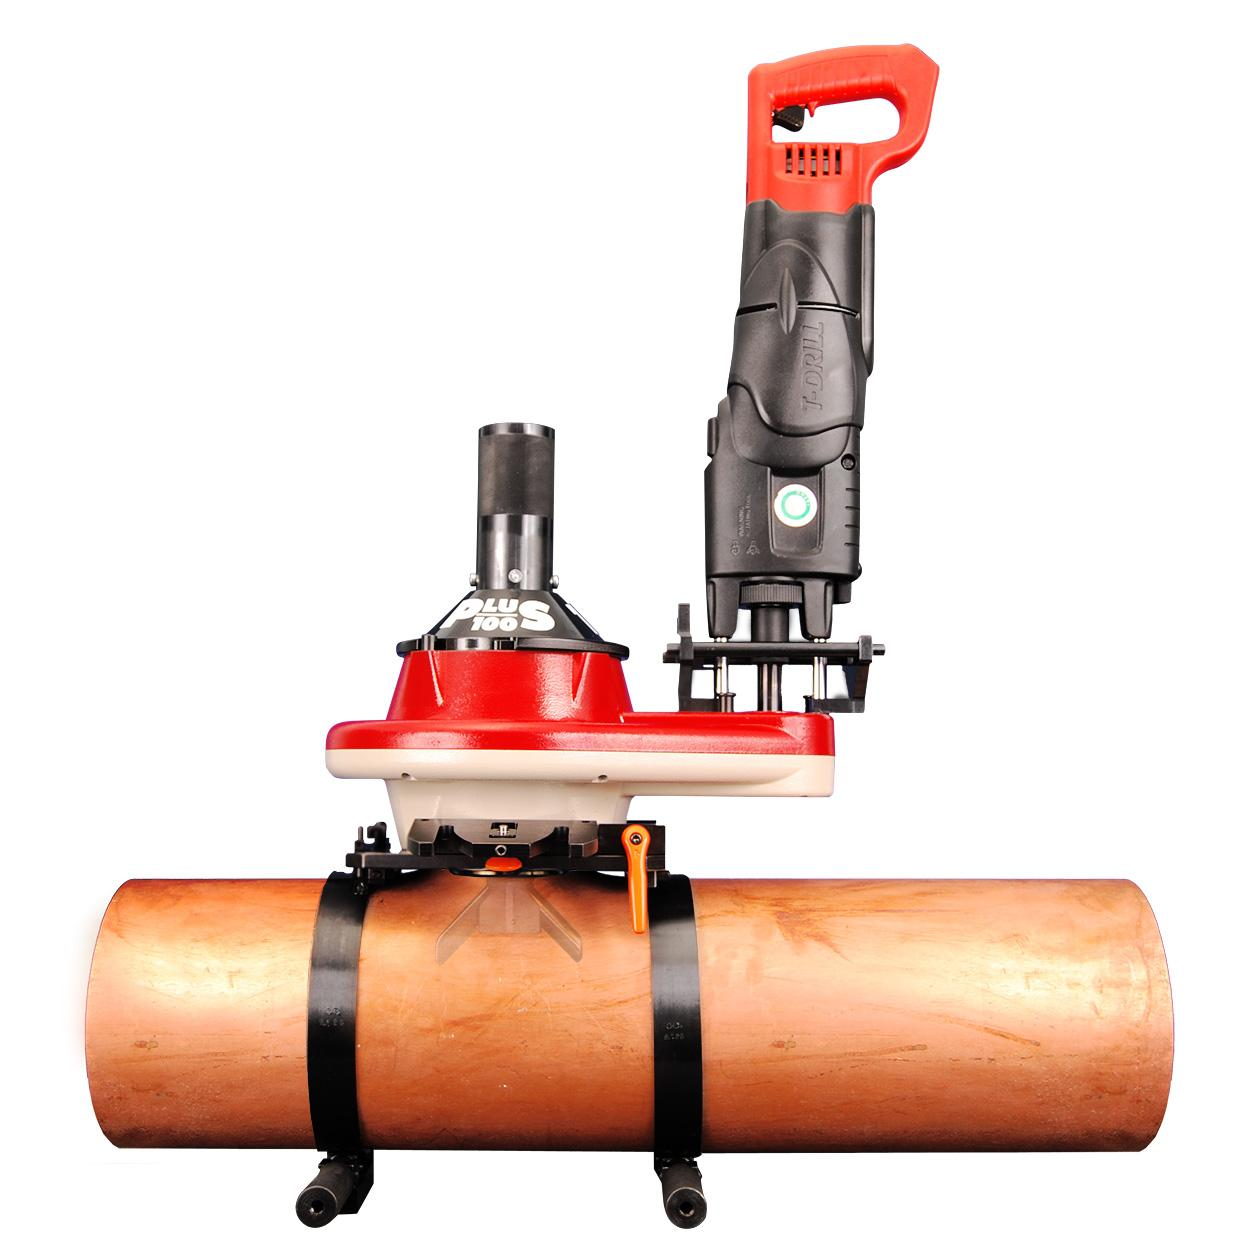 T-DRILL Portable Collaring System for Copper tubes